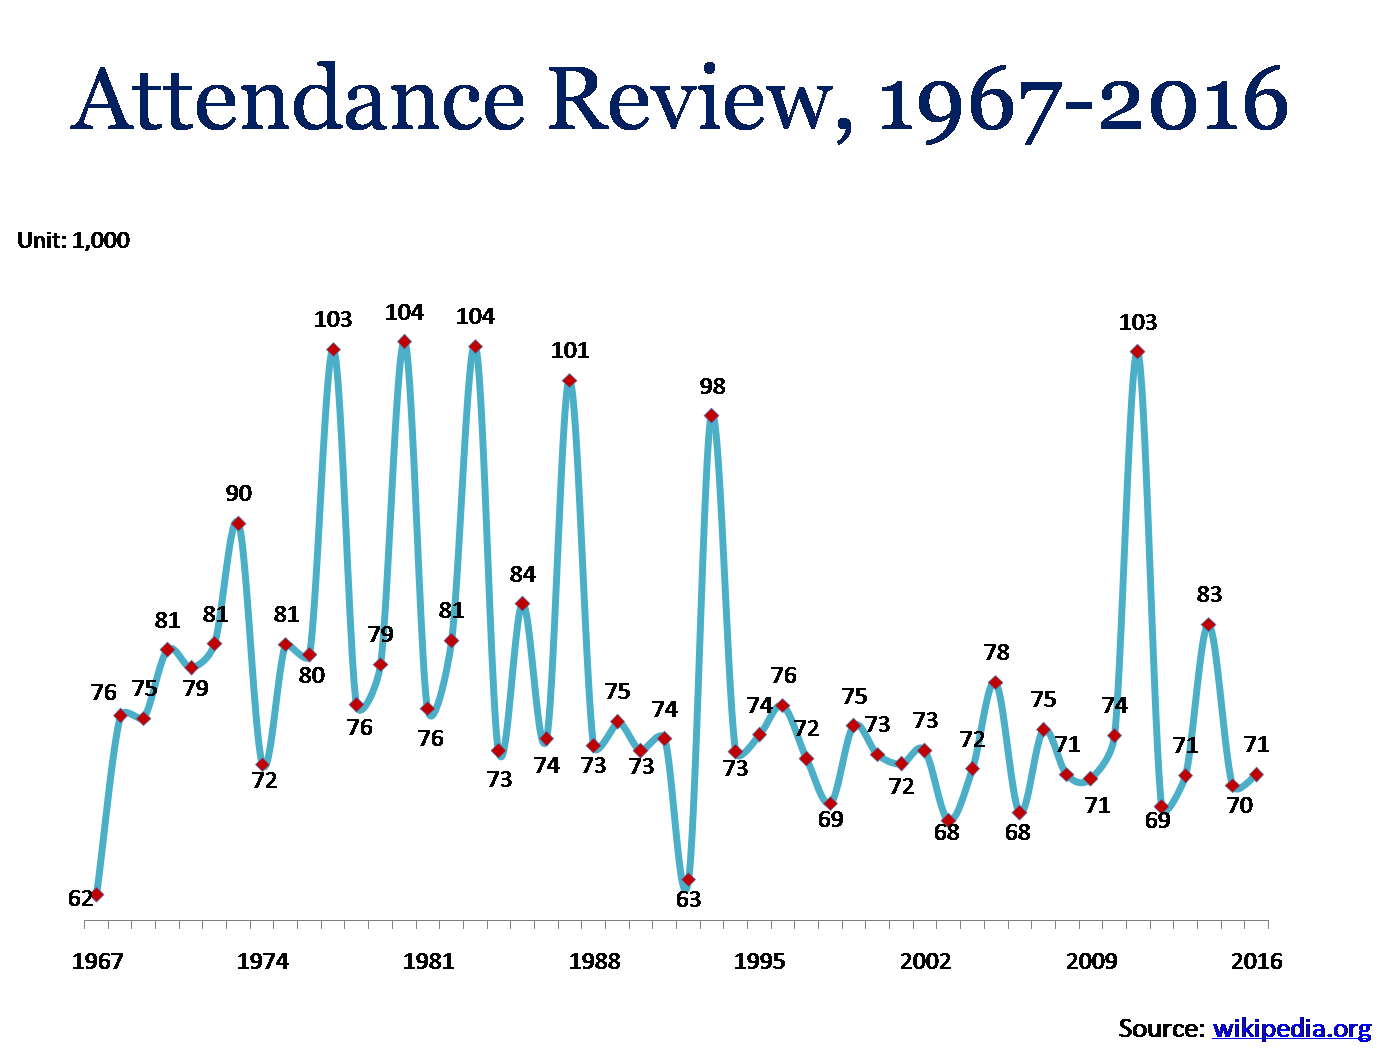 Super Bowl Attendance Review from 1967 to 2016 in PowerPoint template